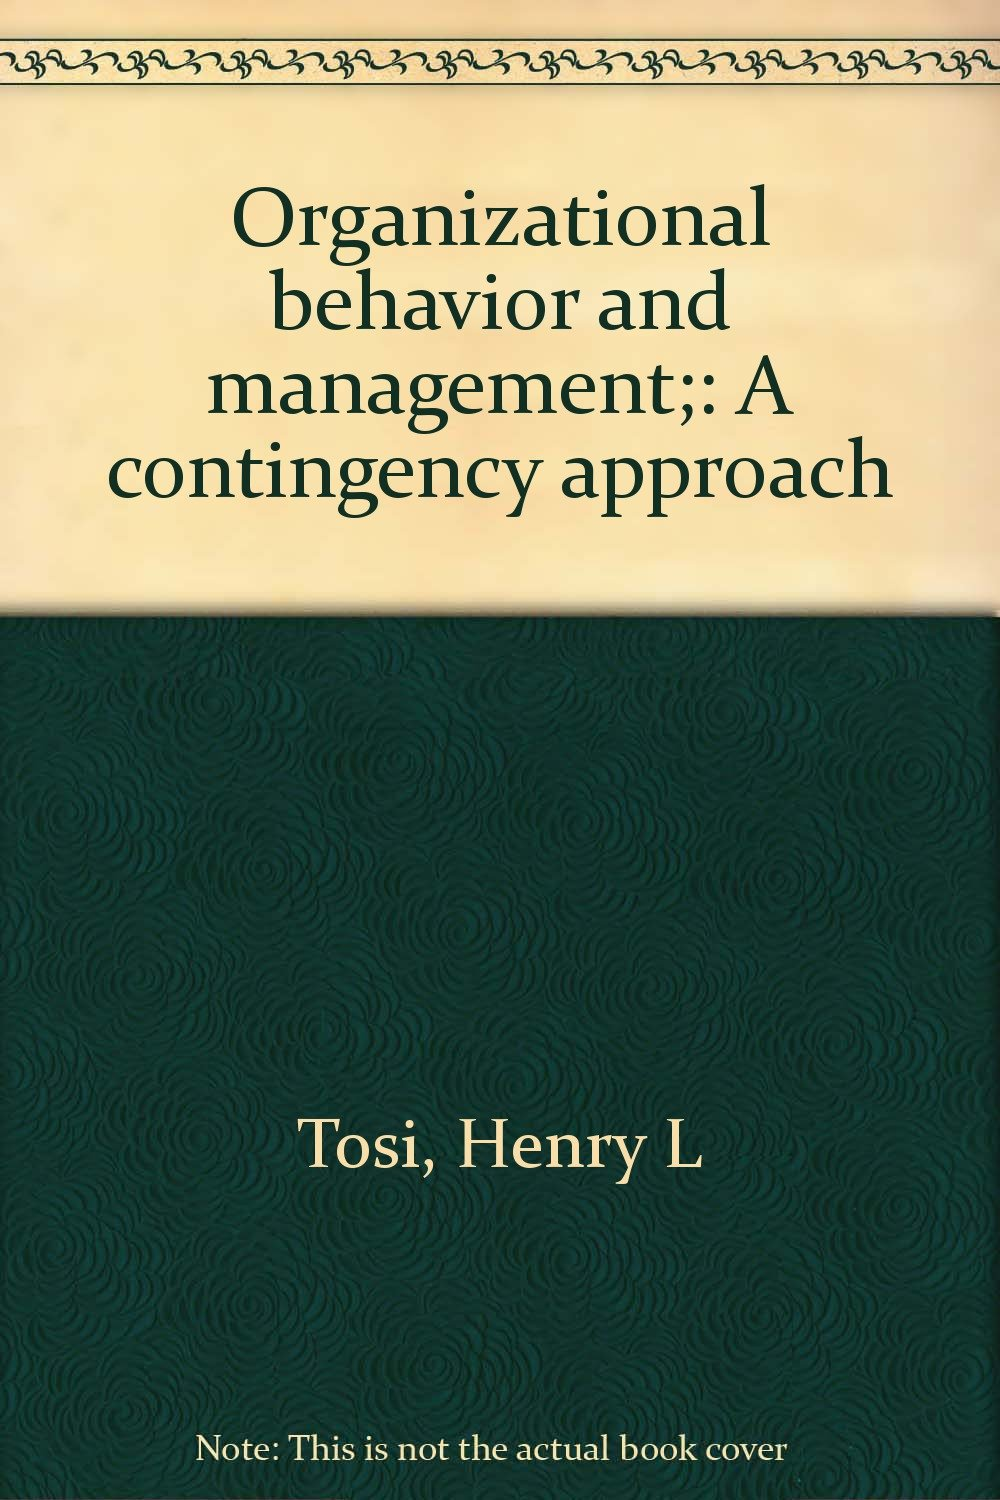 Organizational behavior and management;: A contingency approach